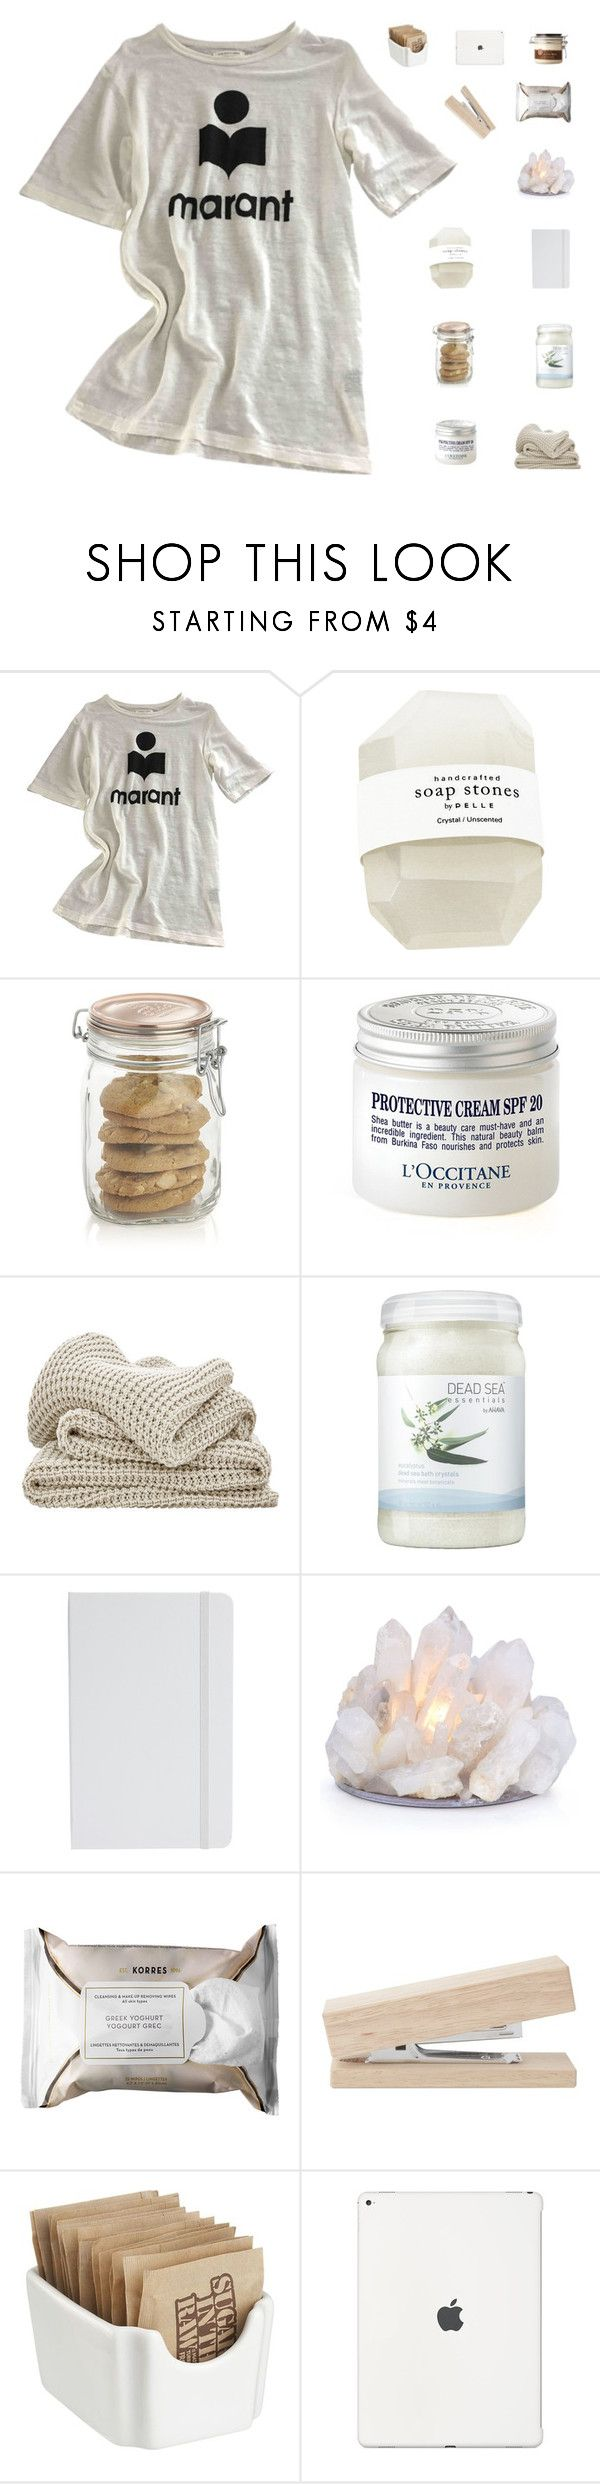 """go follow my new art account @abbeyso-art !!"" by abbeyso on Polyvore featuring Étoile Isabel Marant, Crate and Barrel, L'Occitane, Ahava, ASOS, Korres and The Body Shop"